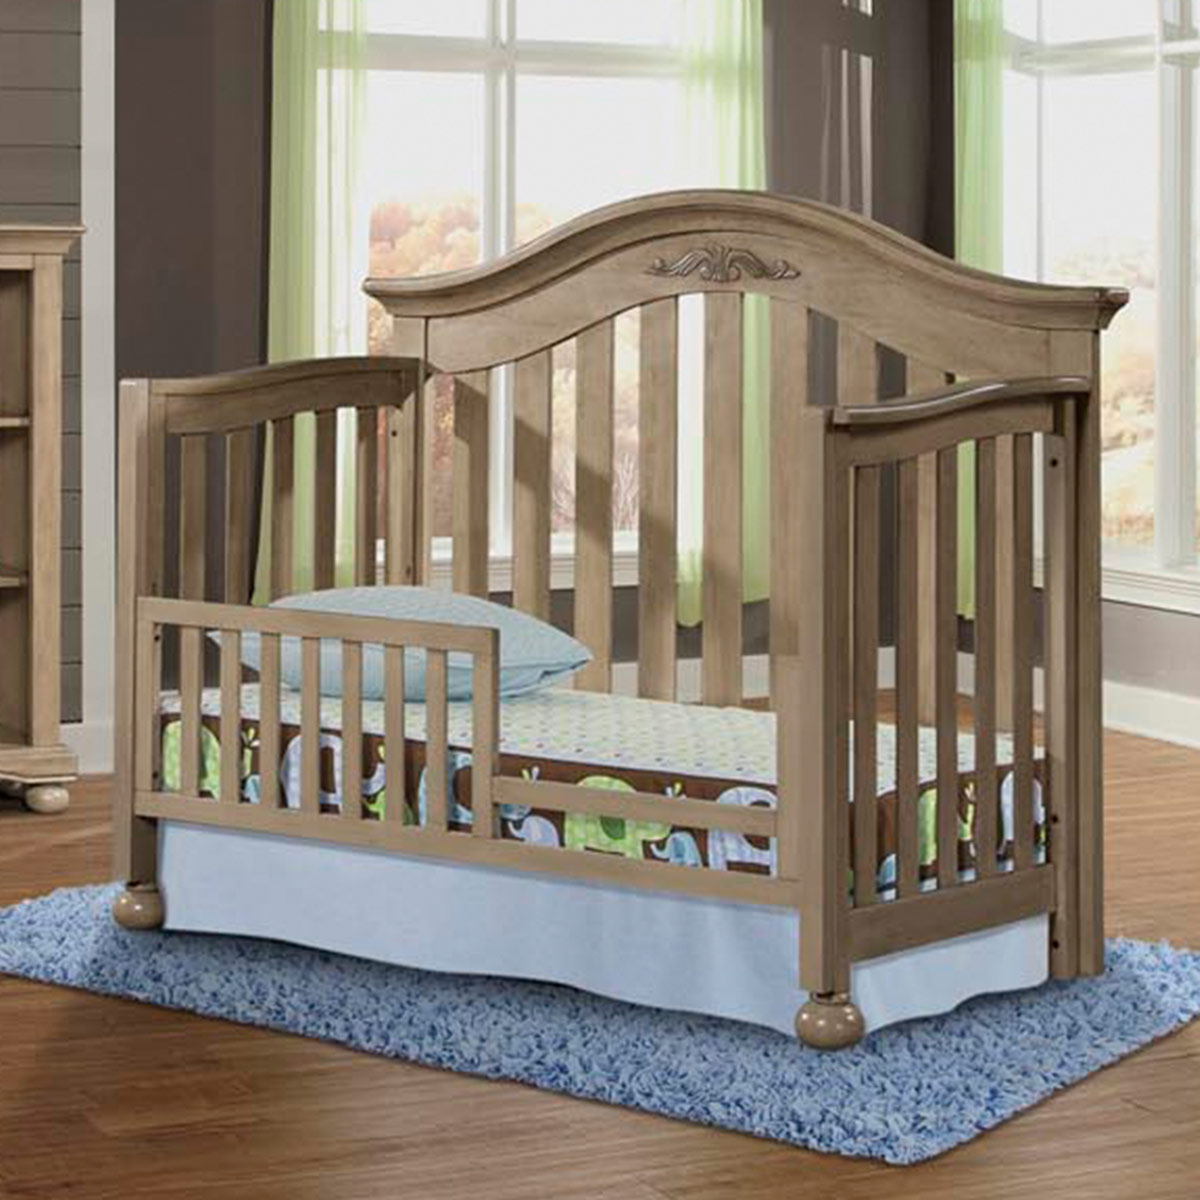 Perfect Westwood Design Meadowdale 4 In 1 Convertible Crib In Vintage FREE SHIPPING